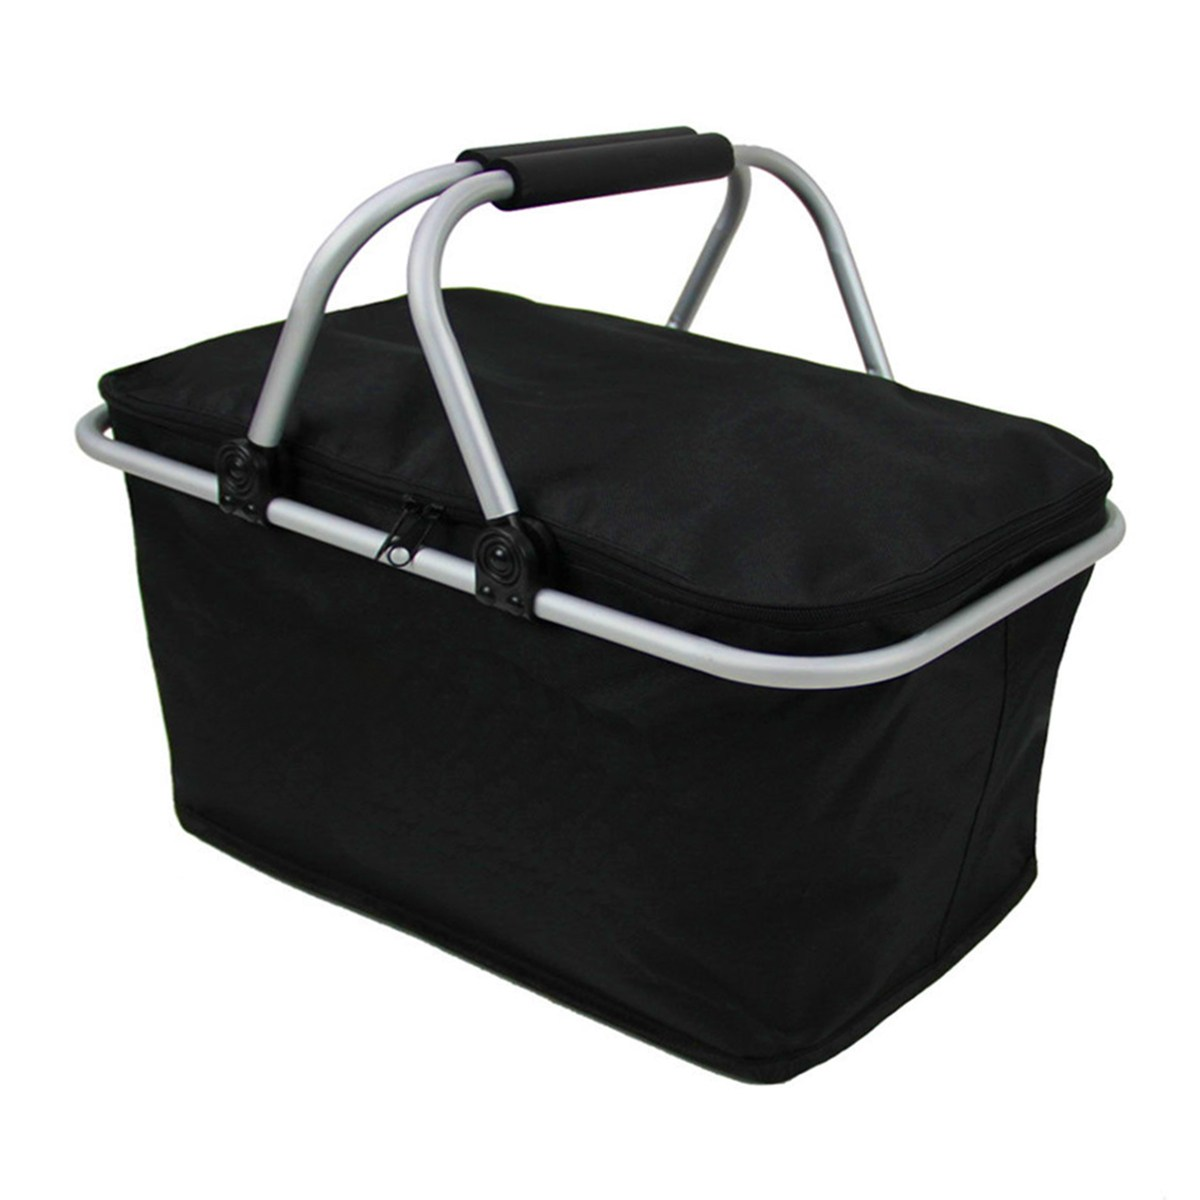 46cm x 28cm x 24cm Folding Picnic Camping Insulated Cooler Cool Hamper Storage Basket Bag Box outdoor picnic bags sucked hanging laundry hamper dirty clothes storage basket